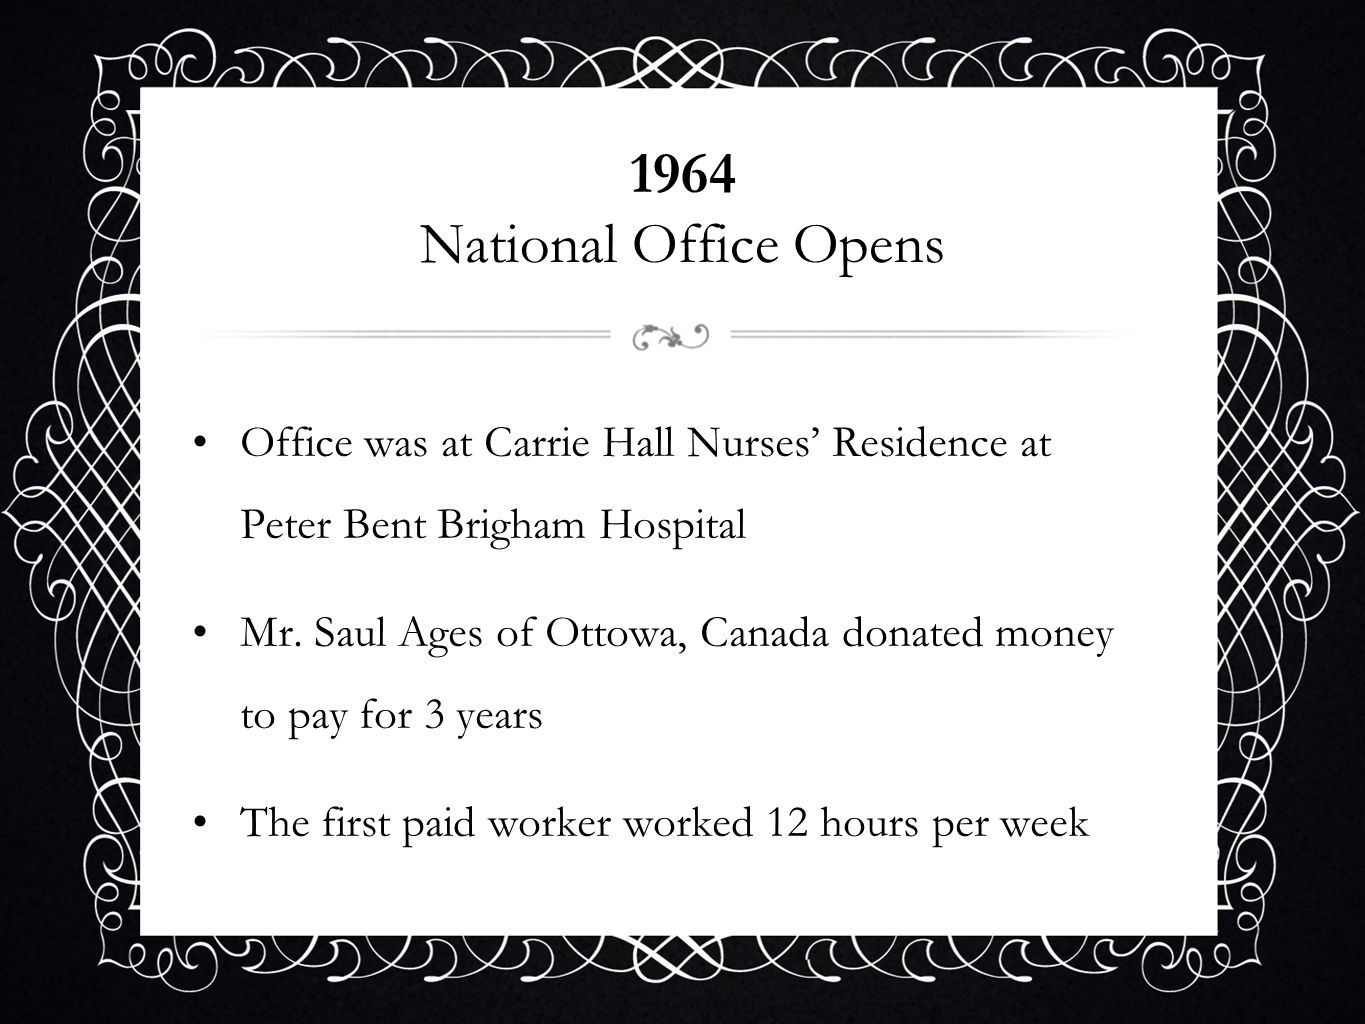 1964 National Office Opens Office was at Carrie Hall Nurses' Residence at Peter Bent Brigham Hospital.